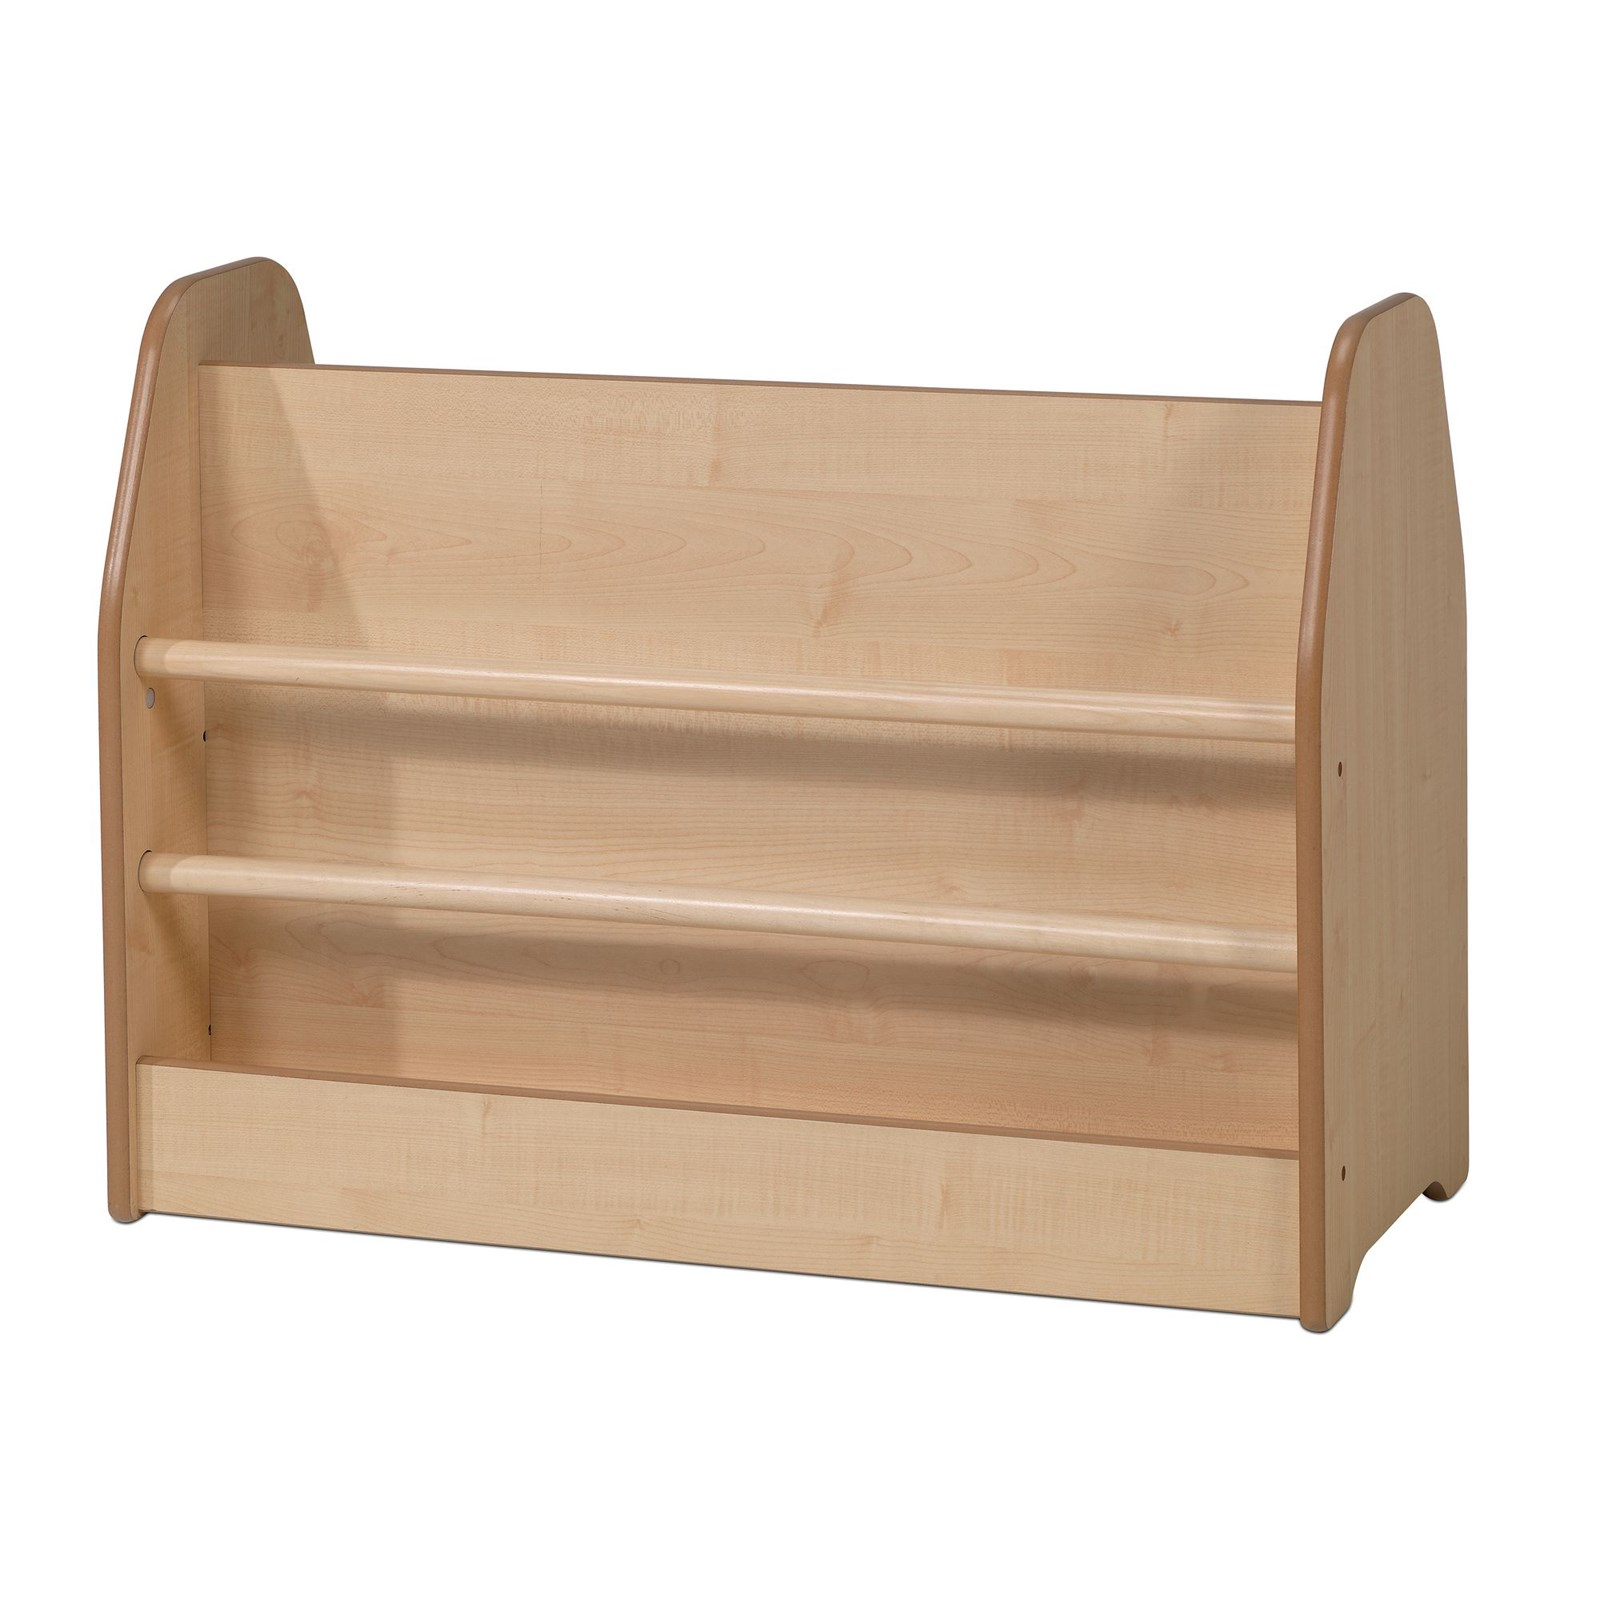 Playscapes Double Sided Book Storage